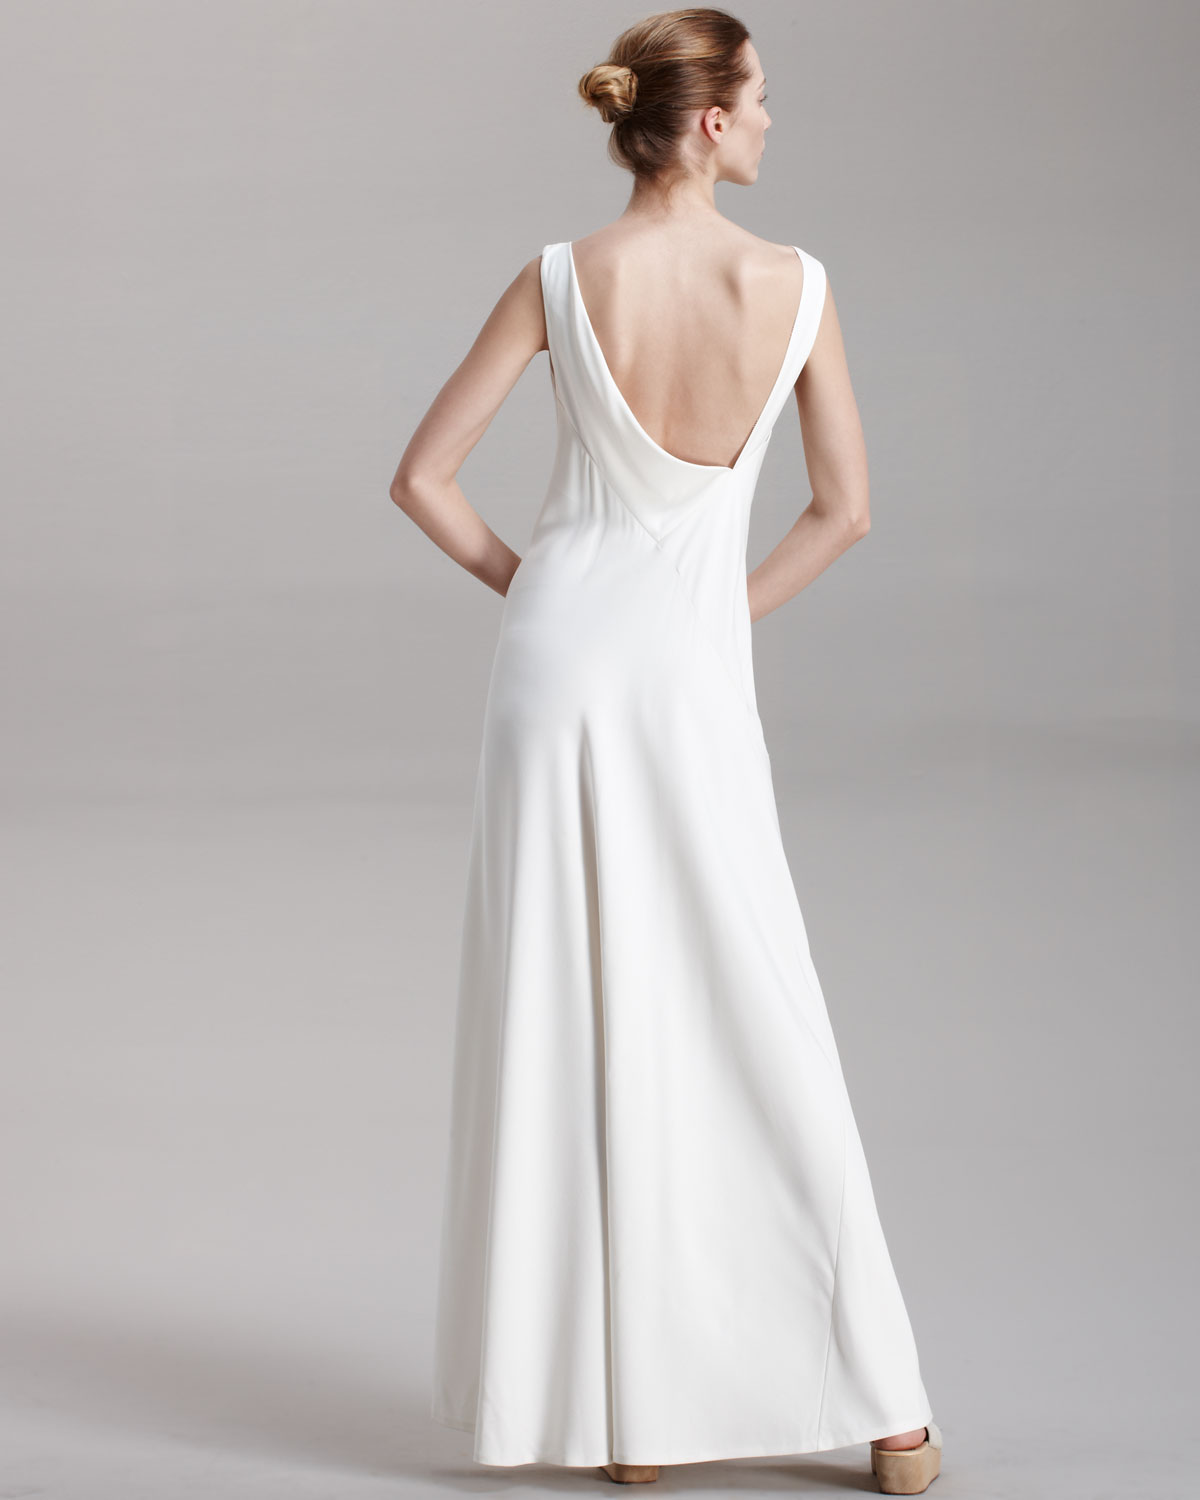 Lyst - The Row Silk Asymmetric-back Gown in White